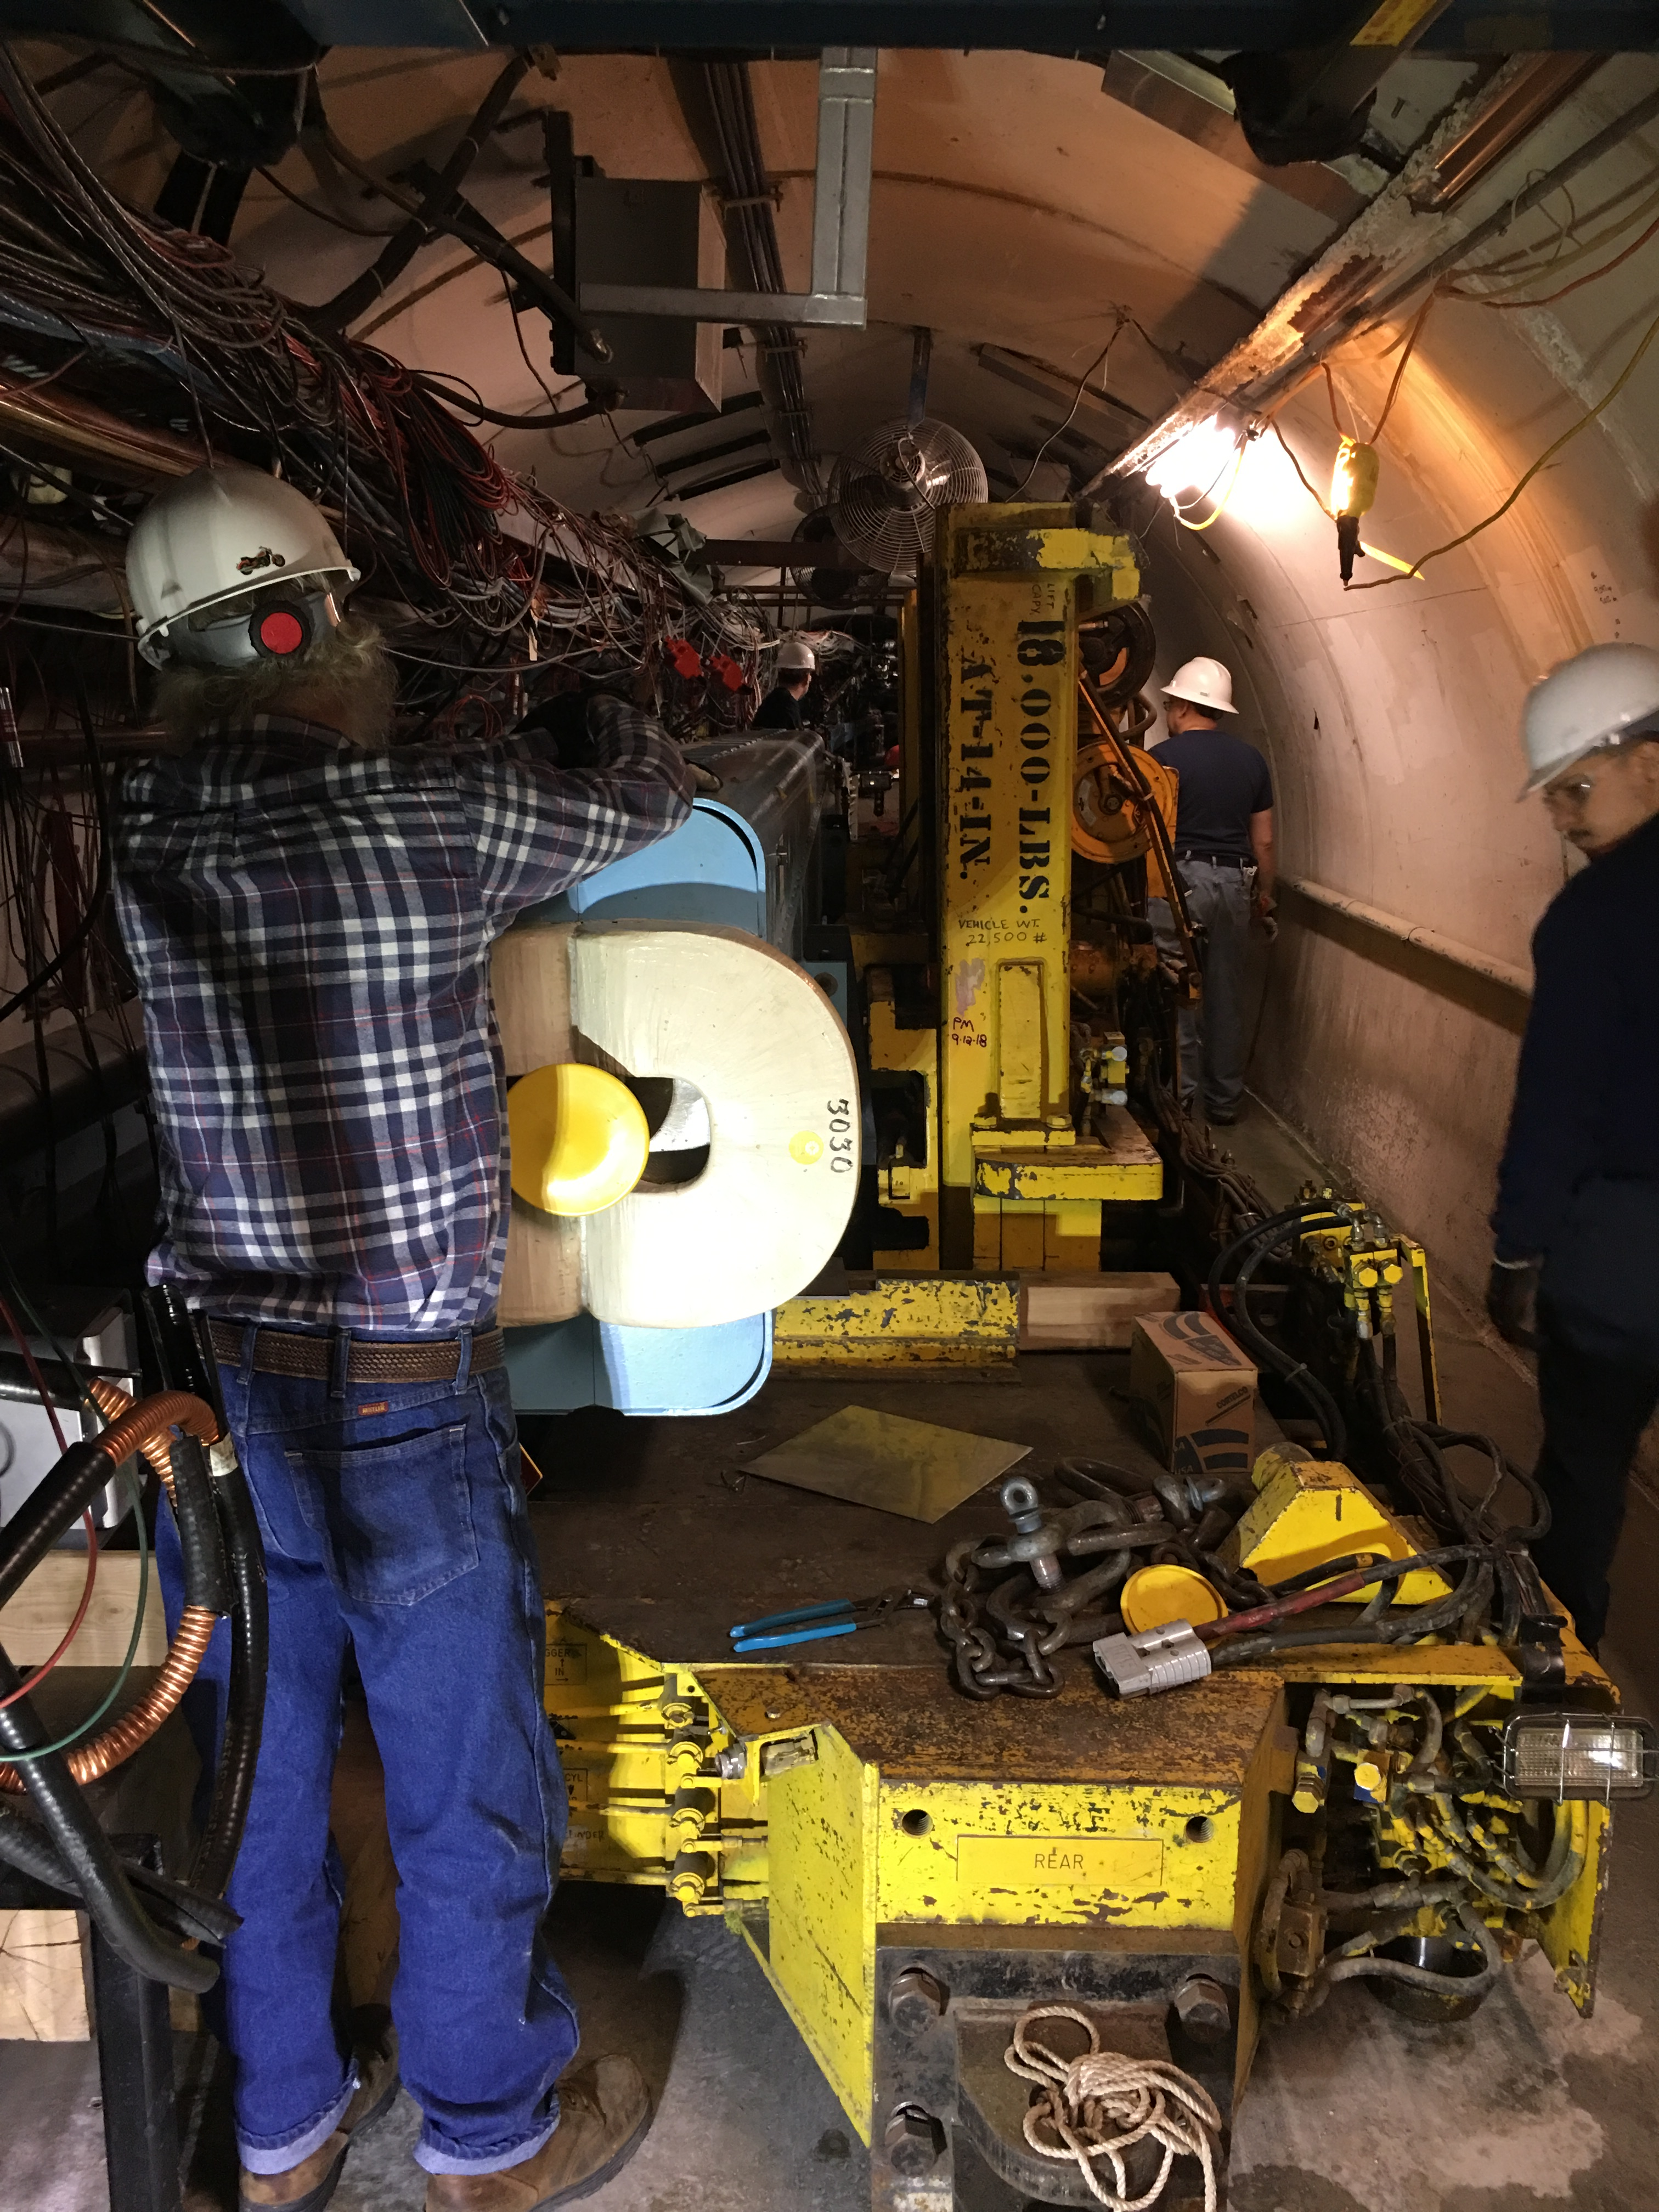 (2/3) The old magnet had failed, and the magnet mover was used to remove it and install the new magnet. accelerator, magnet, people Photo: Christine Ader